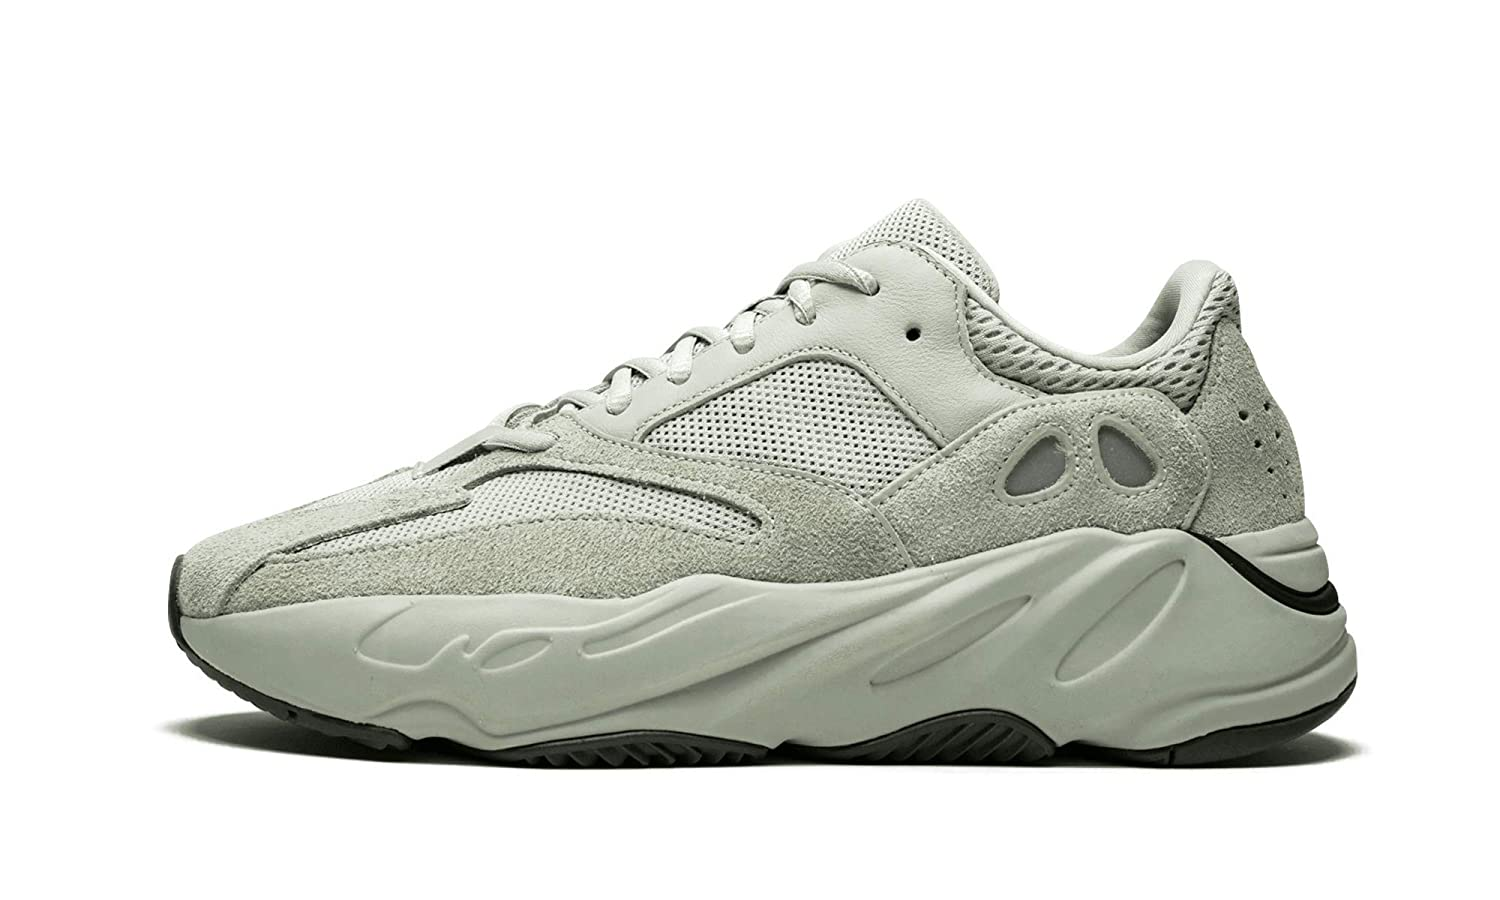 new photos 0730d 857fd Amazon.com | adidas Yeezy Boost 700 (Salt/Salt, 8) | Fashion ...